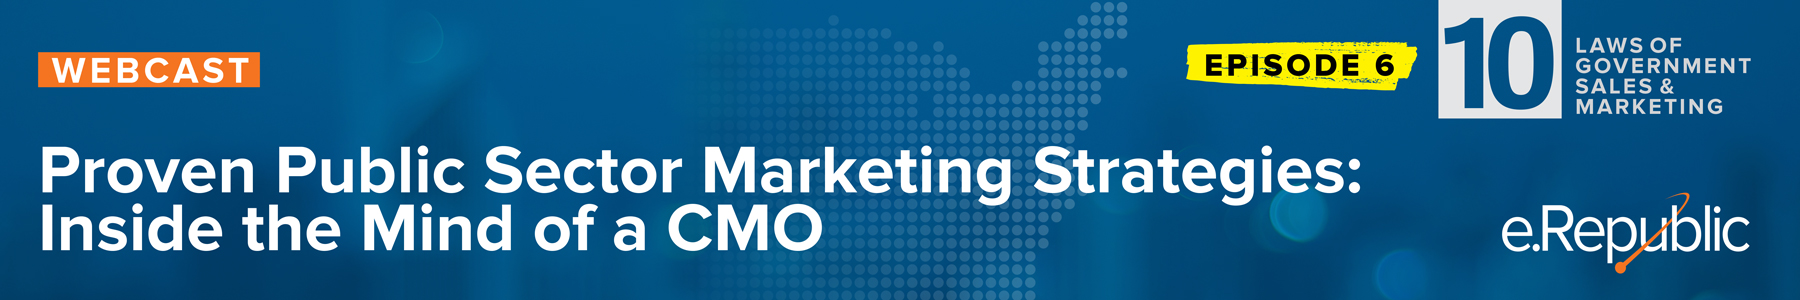 Episode 6: Proven Public Sector Marketing Strategies: Inside the Mind of a CMO